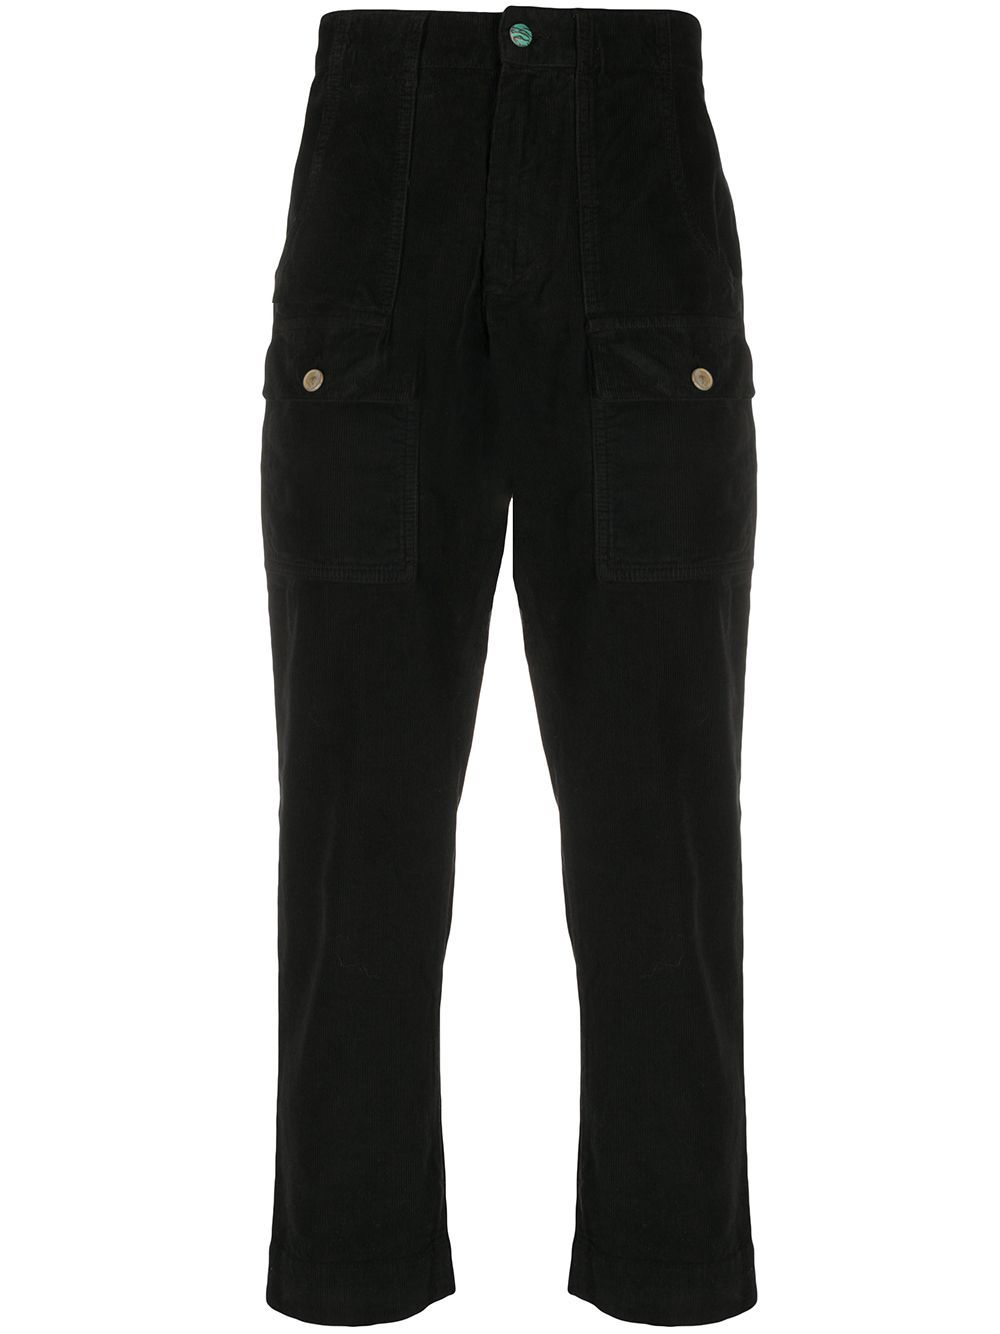 PALM ANGELS Corduroy Pockets Pants Black